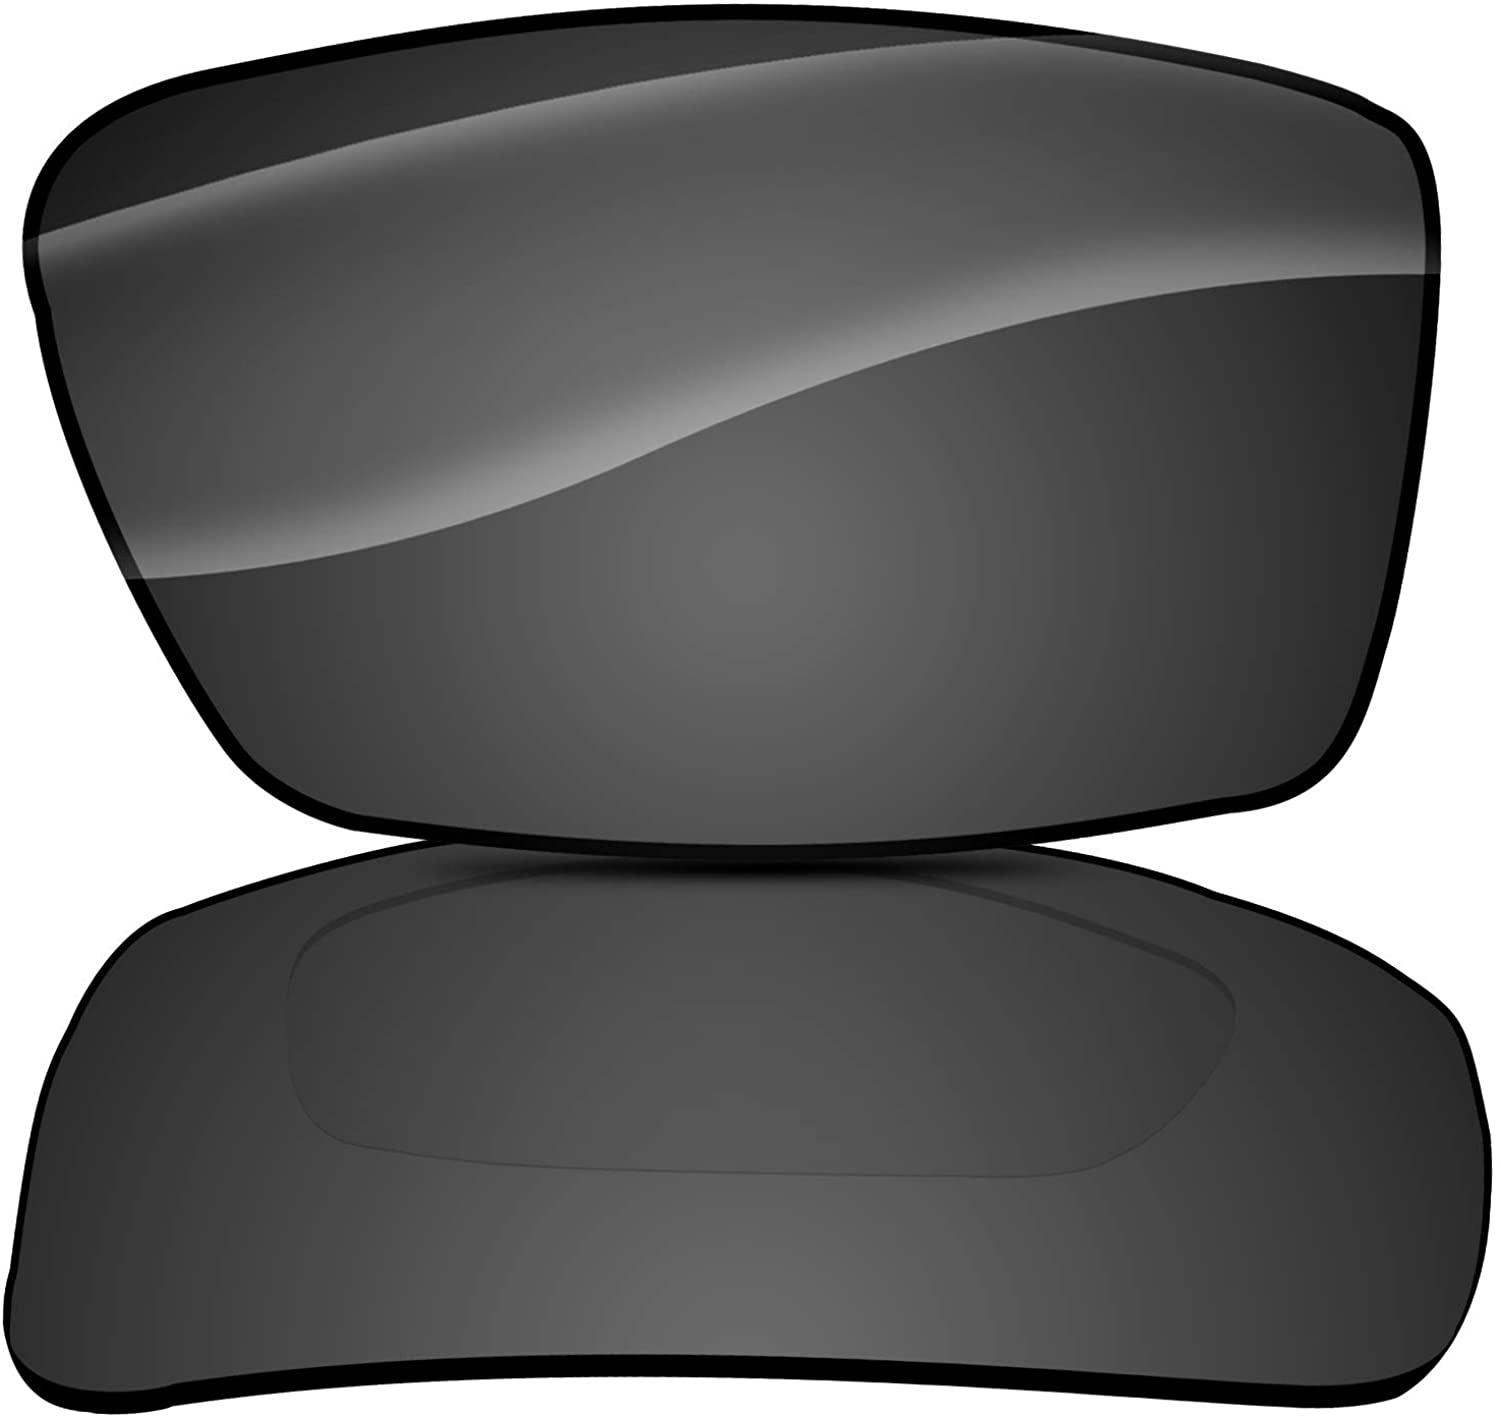 COOLENS Polarized Replacement Lenses for Oakley Gascan Sunglasses UV Protection